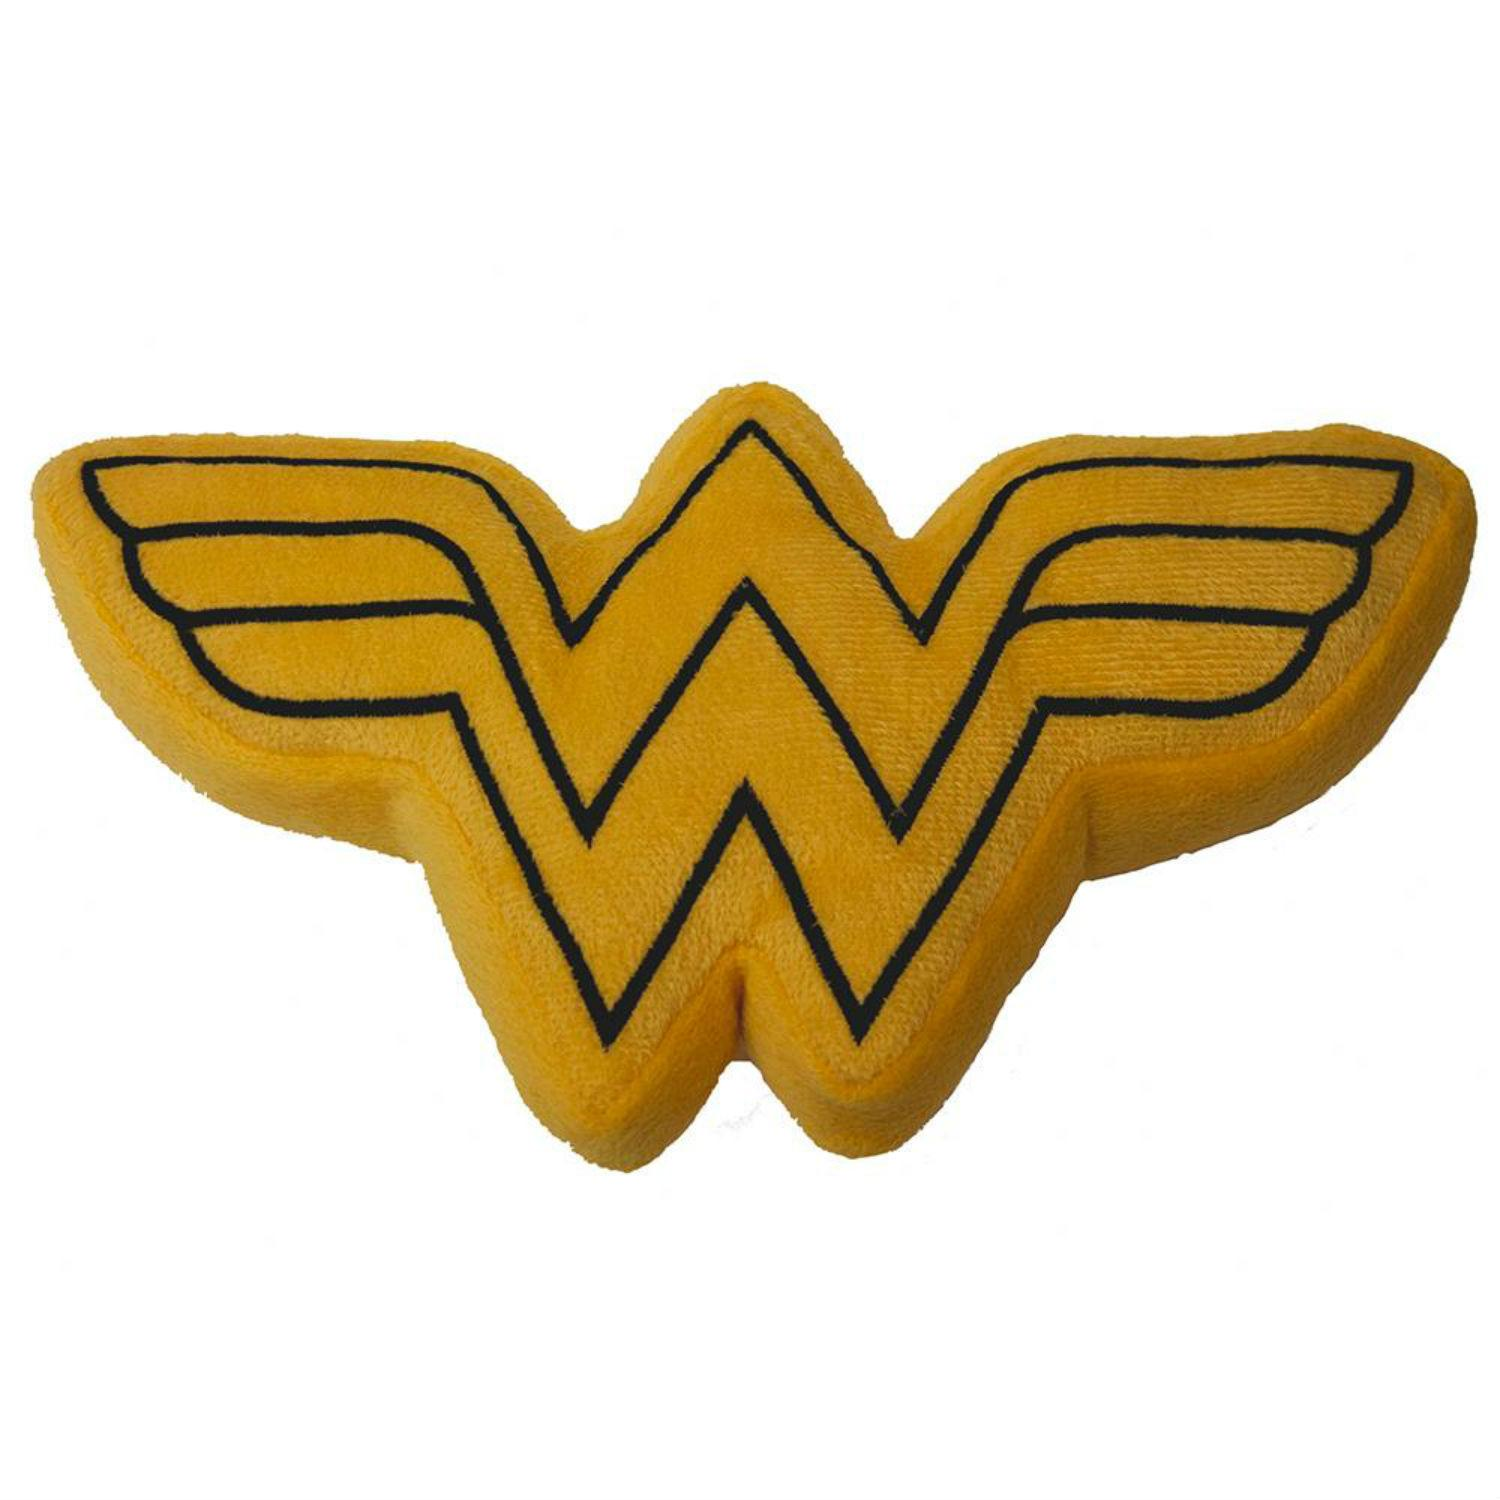 Wonder Woman Squeaky Plush Dog Toy by Buckle-Down